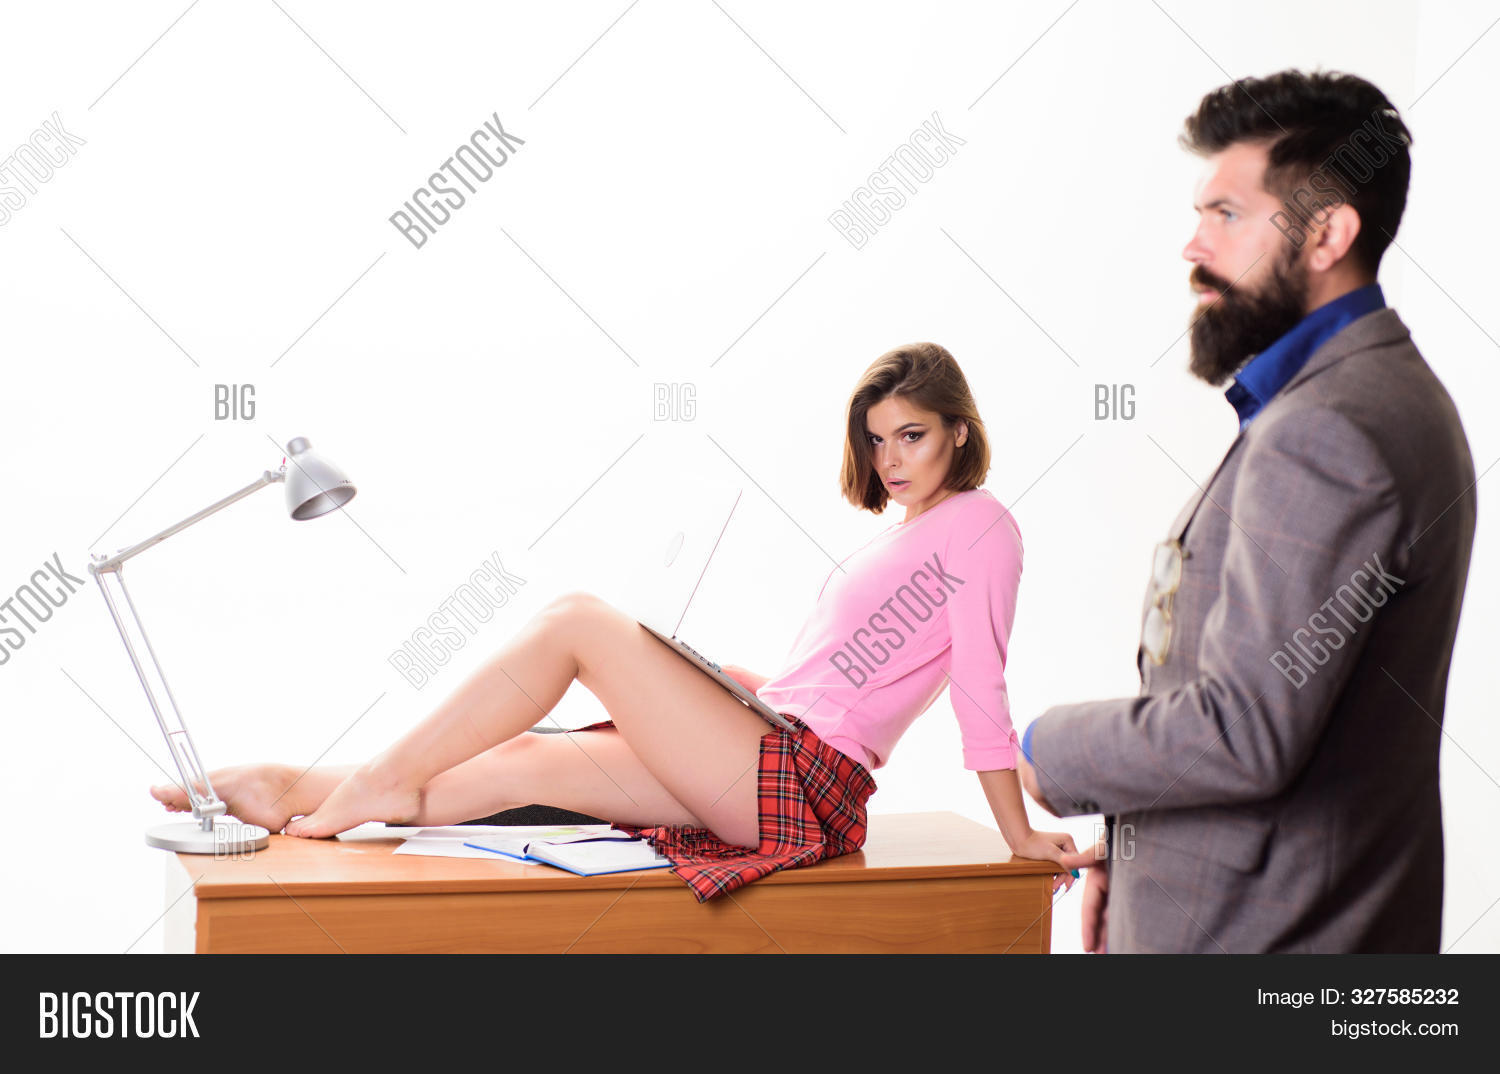 about,assistant,attractive,bearded,boss,broker,business,businessman,career,ceo,concept,desire,erotic,excited,flirt,full,girl,growth,job,lady,legs,man,manager,office,personal,provocative,relations,romance,secretary,seduce,seductive,sit,staff,table,triggers,worker,workplace